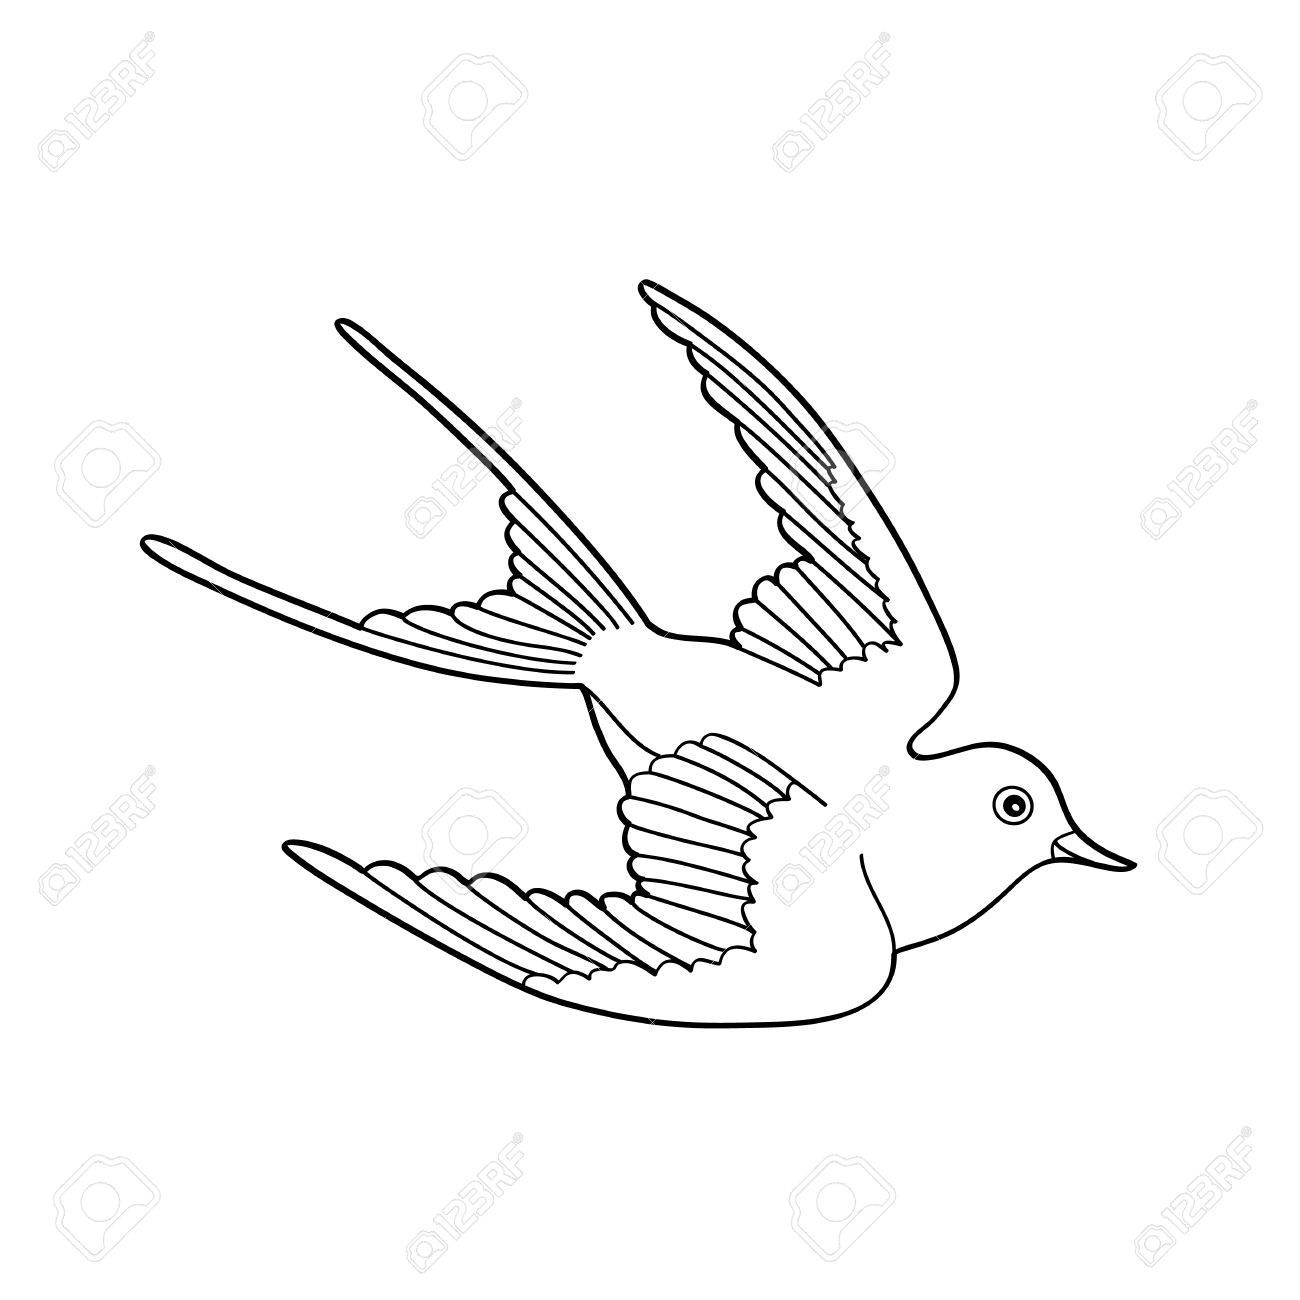 1300x1300 Contour Image Of Bird Flying Hand Drawn Isolated On White